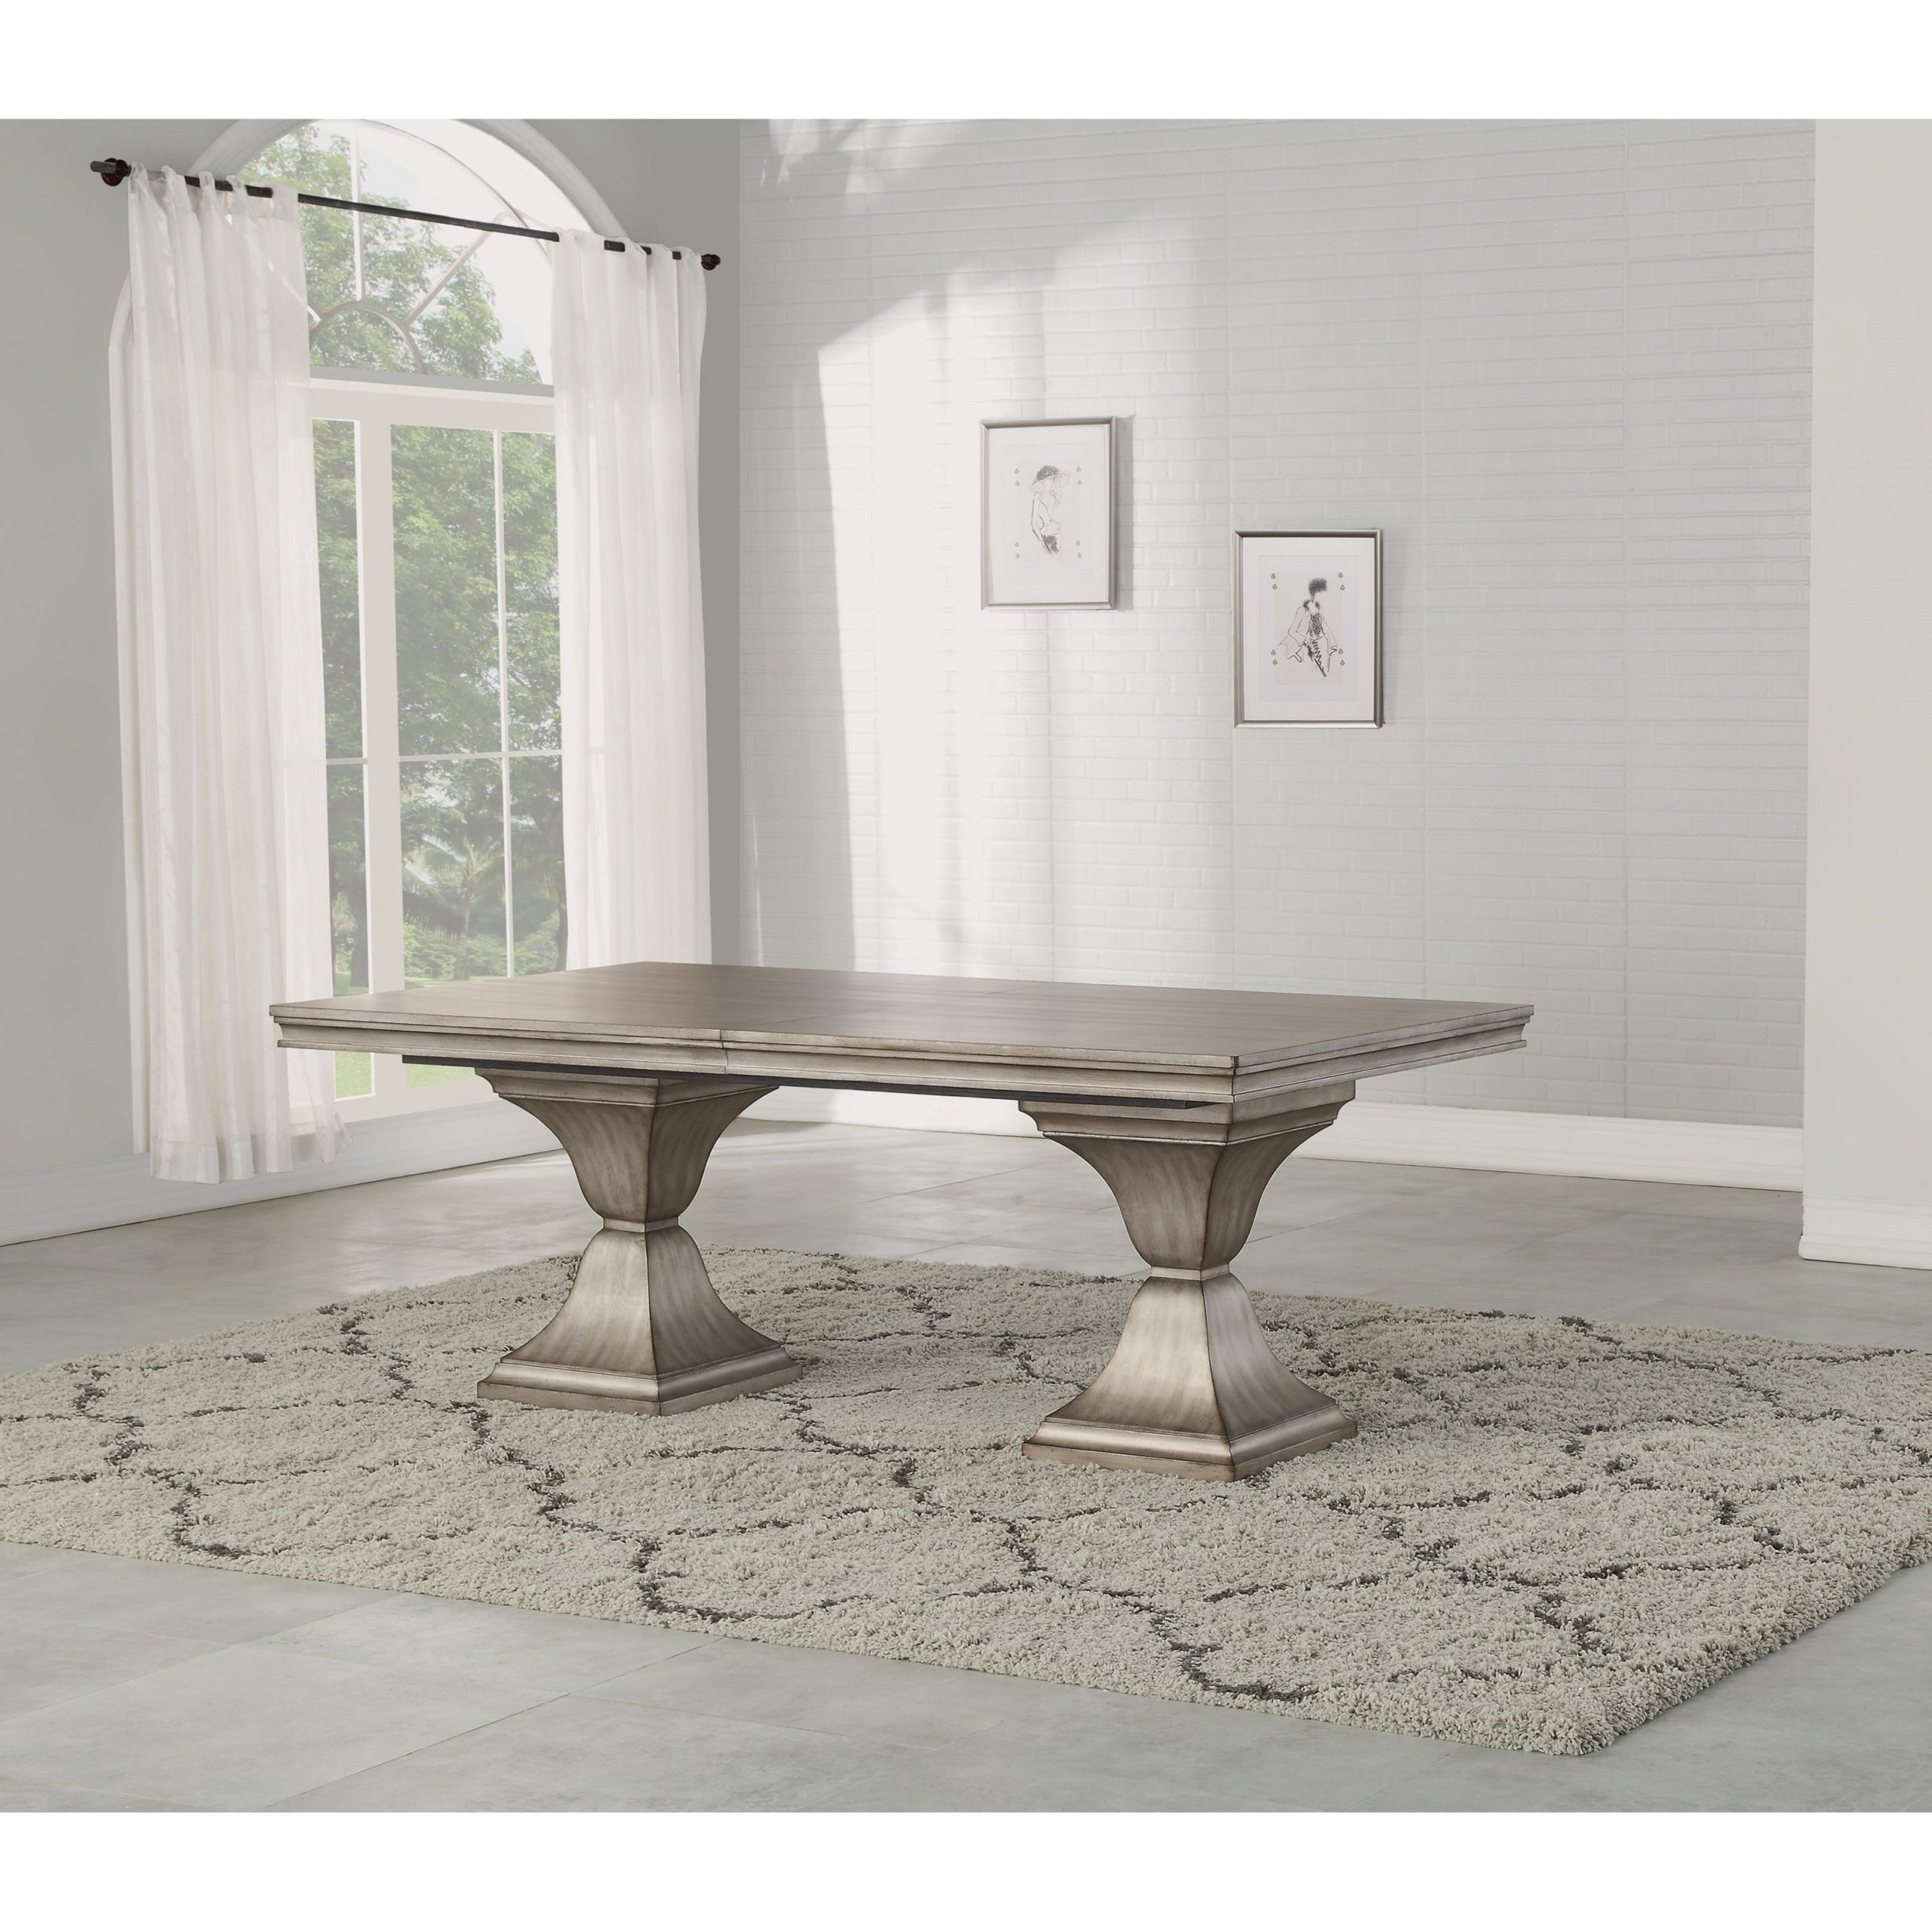 Flexsteel Wynwood Collection Vogue Transitional Rectangular Regarding Trendy Transitional Rectangular Dining Tables (Gallery 26 of 30)